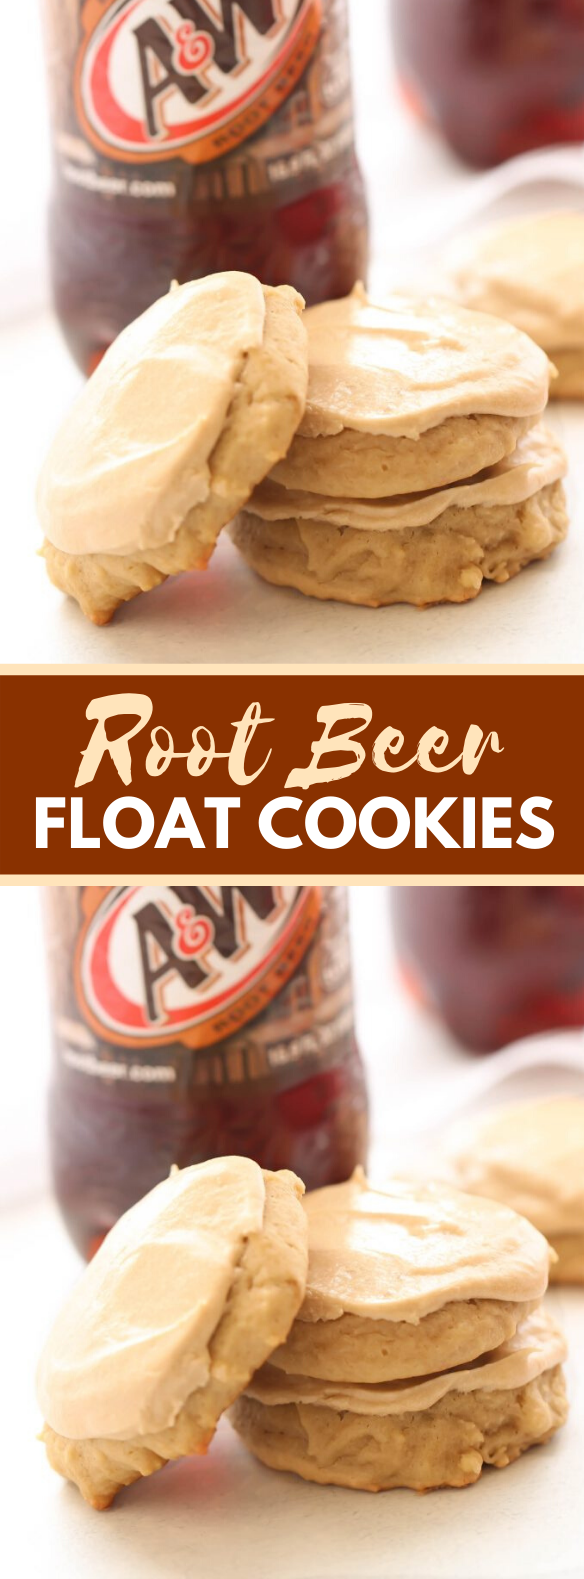 ROOT BEER FLOAT COOKIES #desserts #sweets